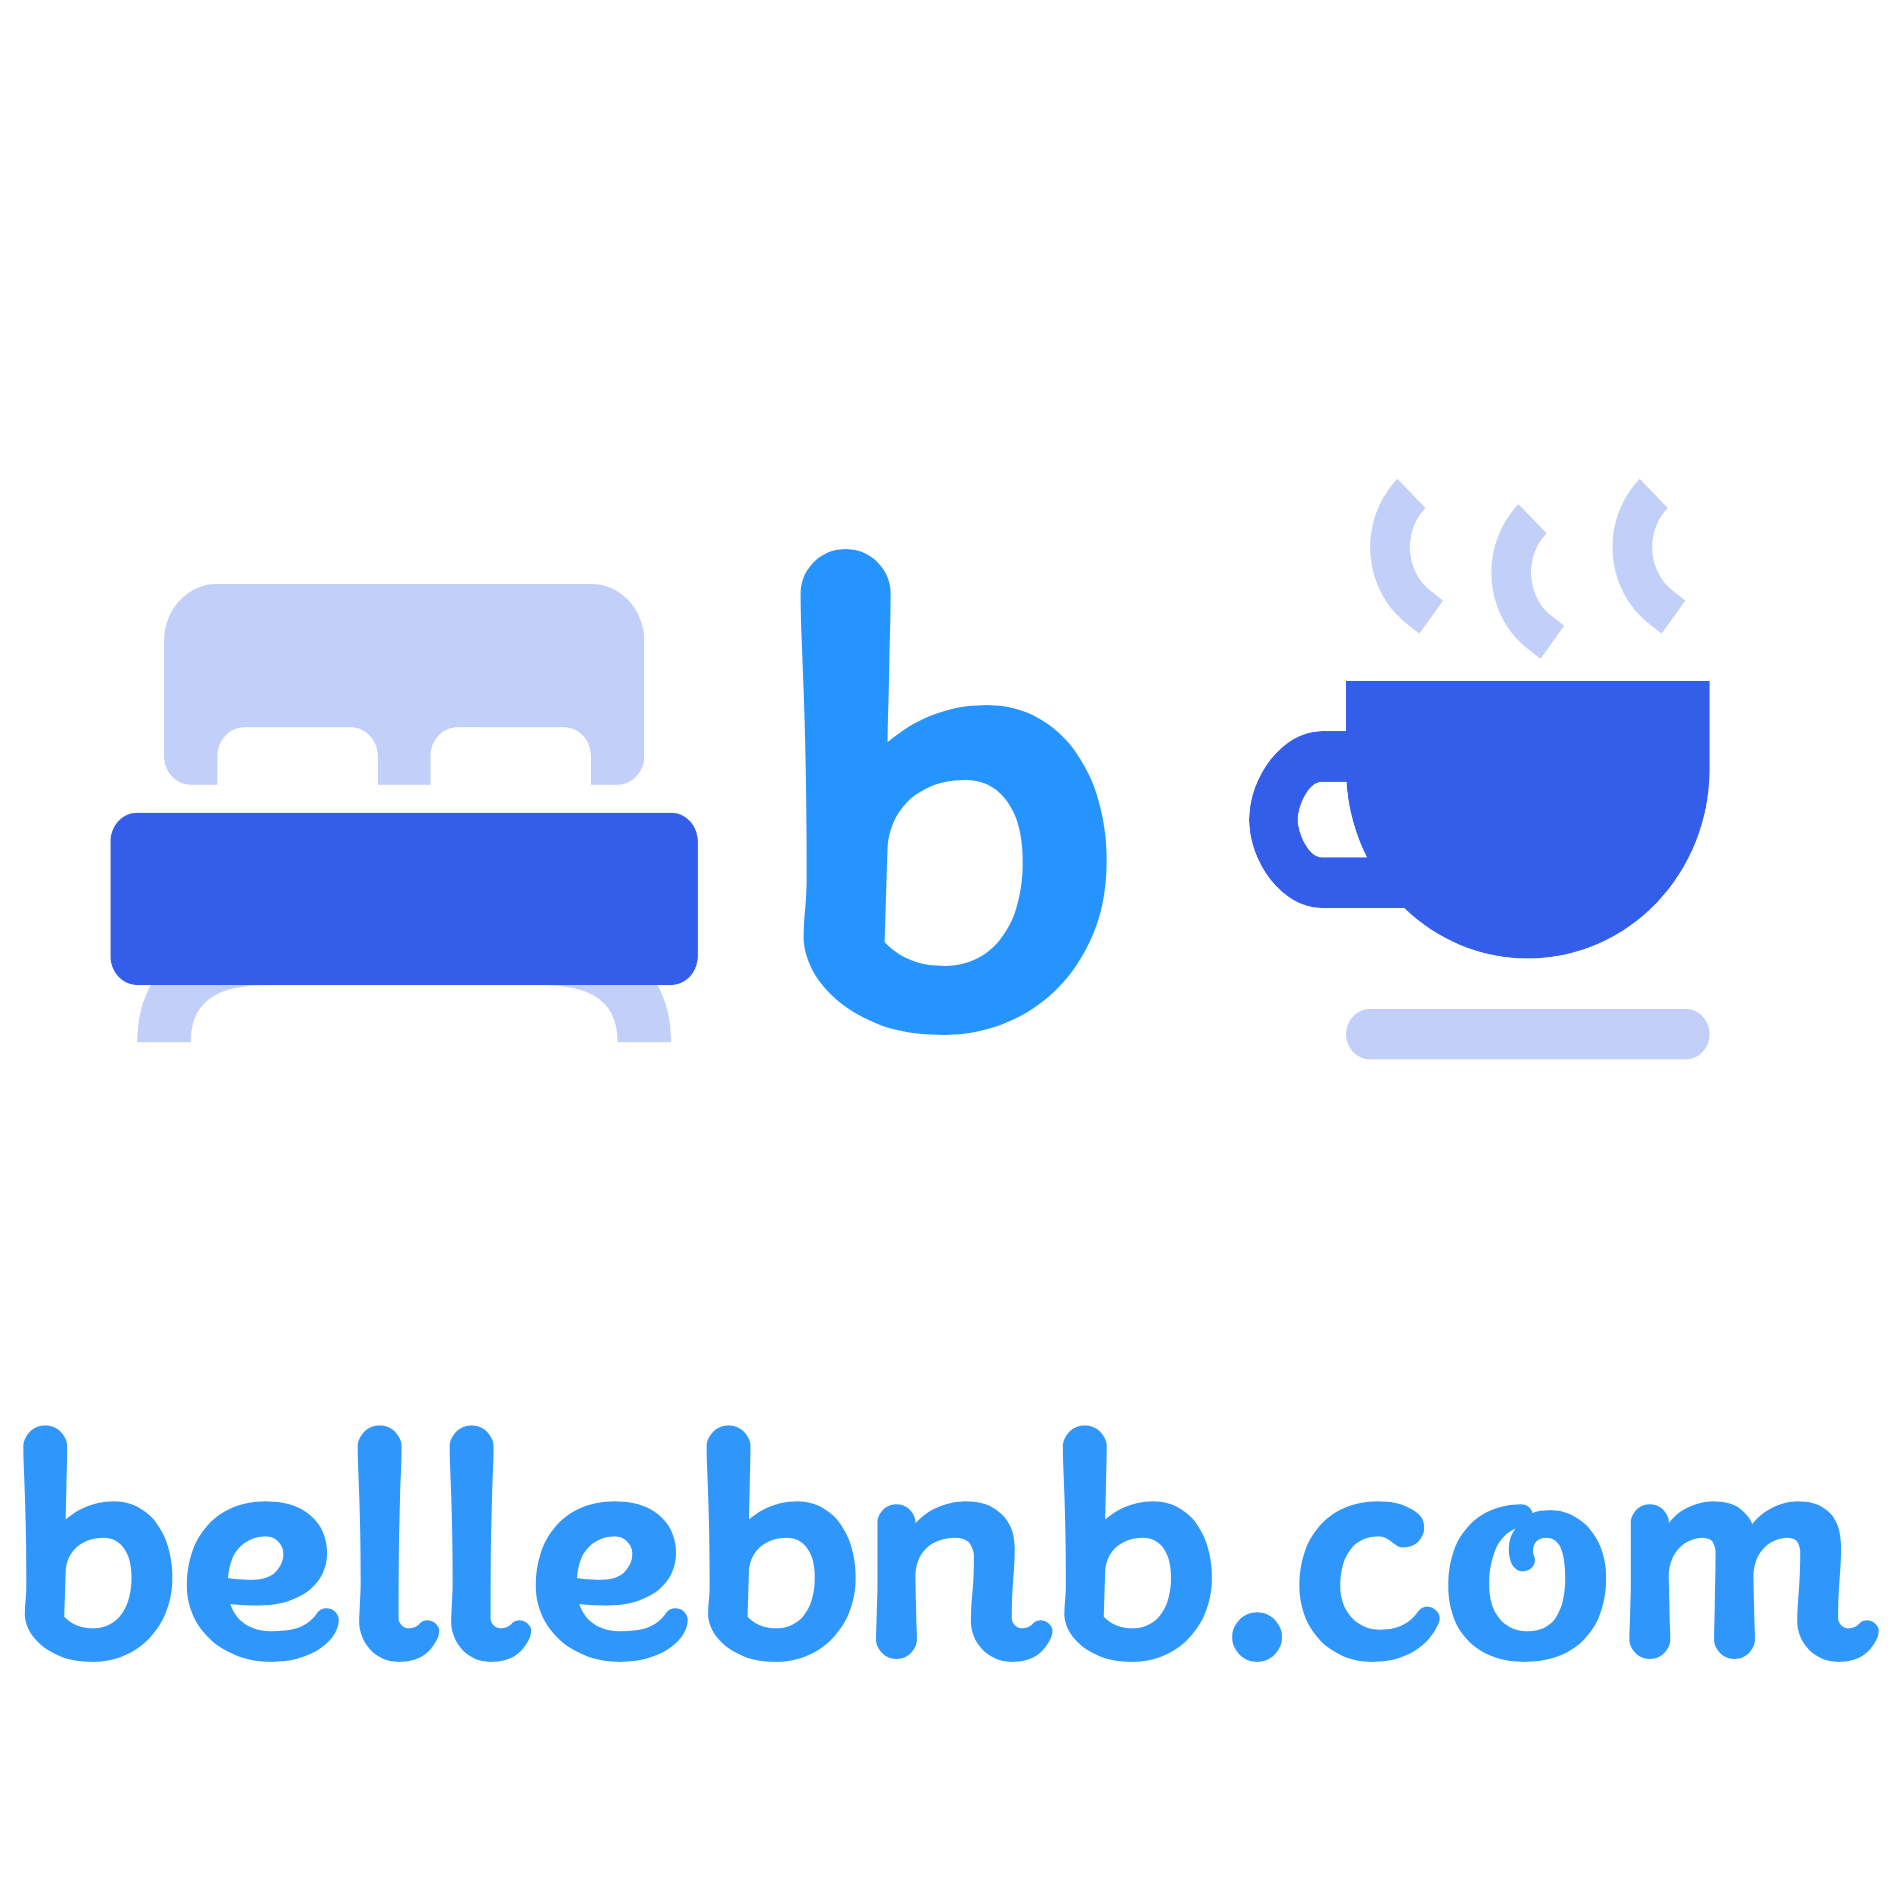 Bellebnb Hotel PMS , b&b PMS Images, Logos, Icons, Trademarks Hotel Property Management System for Images Cloud Hotel PMS, Images Hotel Front Desk, Images Direct Booking Engine,Images Hotel Channel Manager, Images Hotel OTA's, Images Hotel GDS, Images Hotel Payment Gateway, Images Hotel Concierge Services, Images Hotel Website